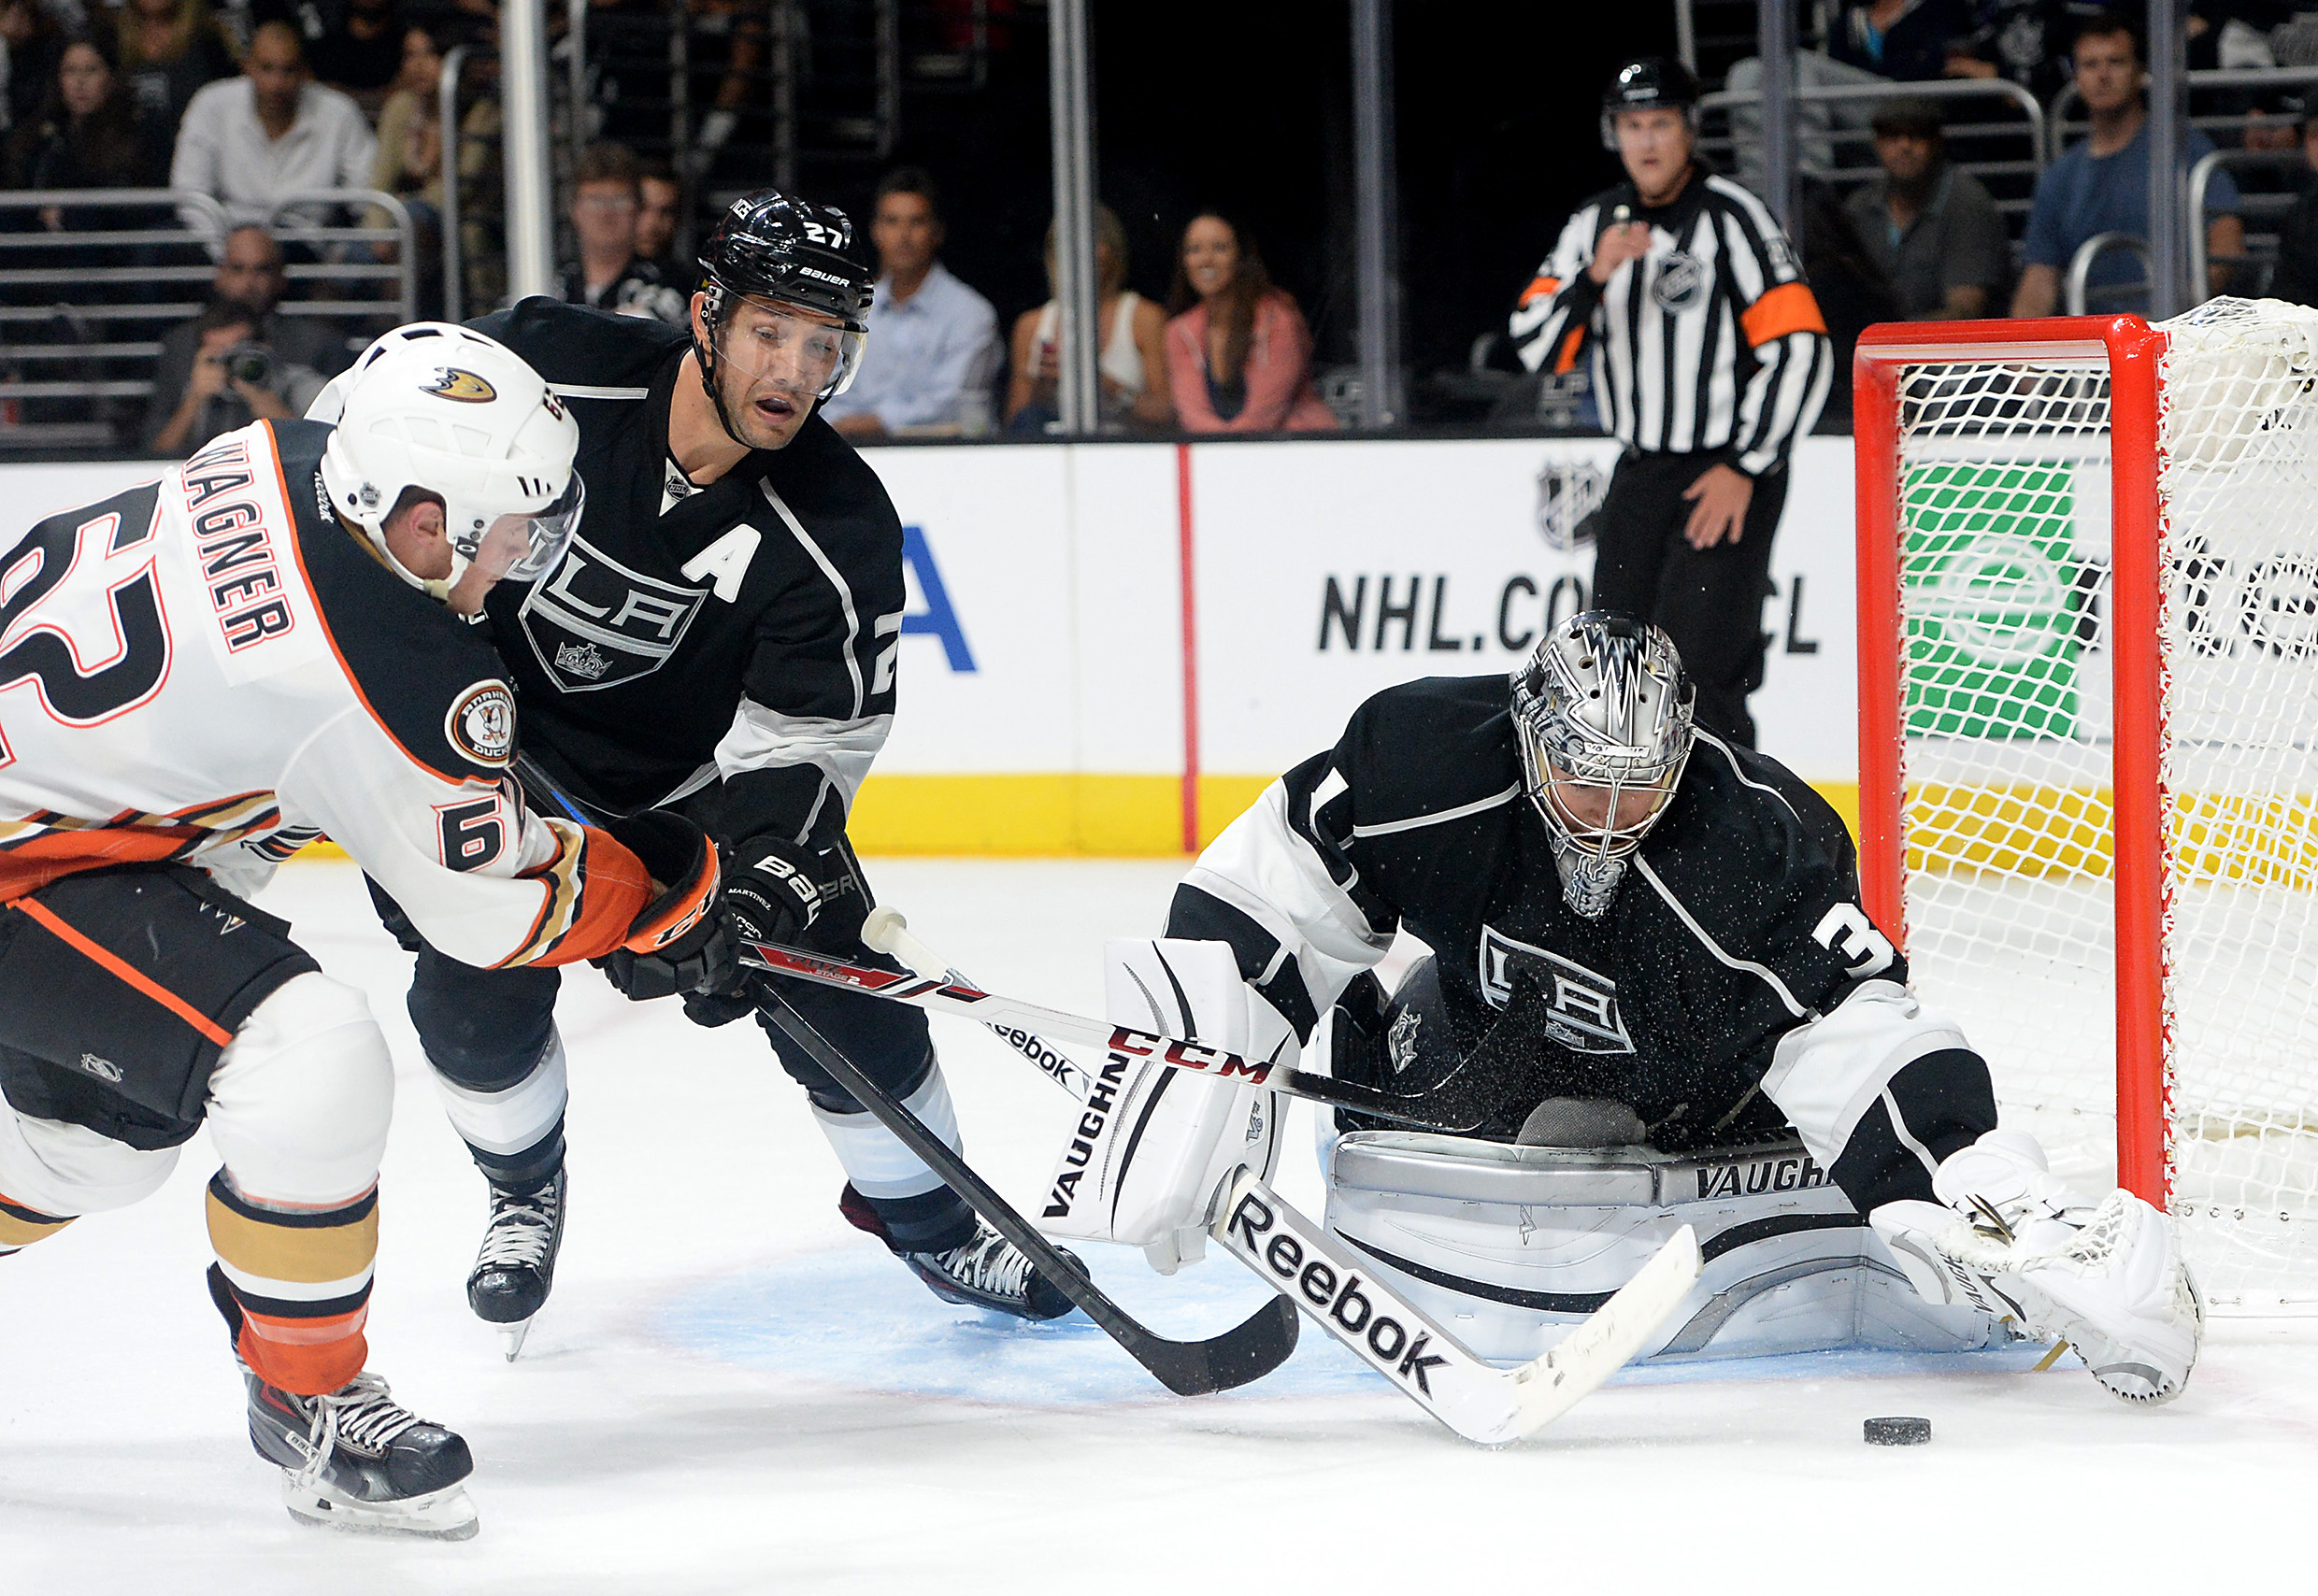 Chris Wagner drives the net during last year's preseason game at STAPLES Center.